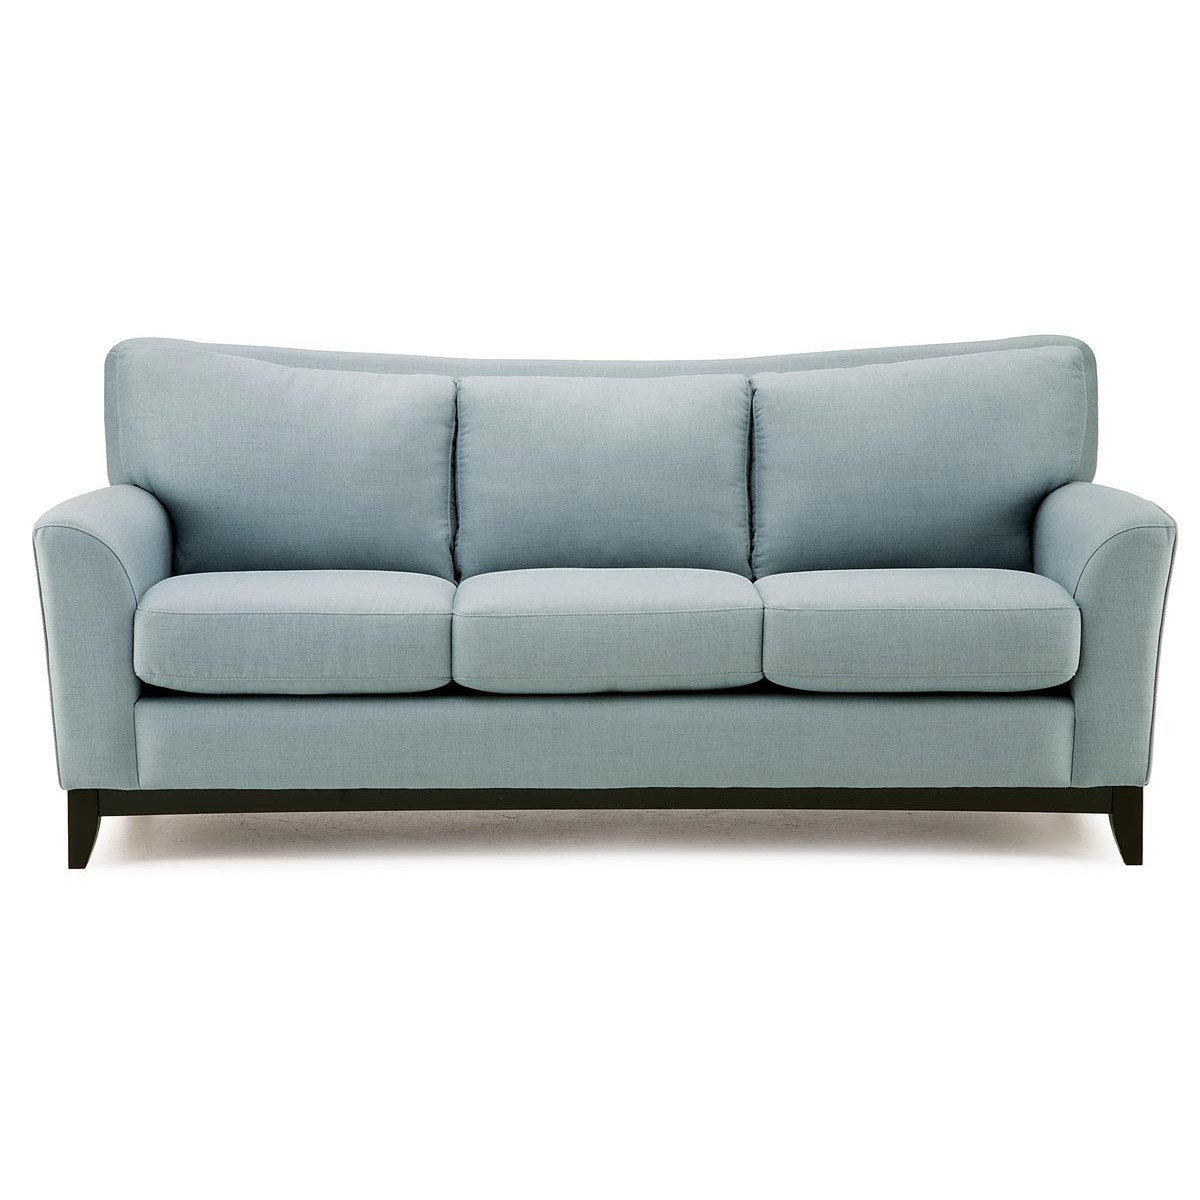 leather sofa cleaning solution india sectional sofas for small area palliser from 1 159 00 by danco modern